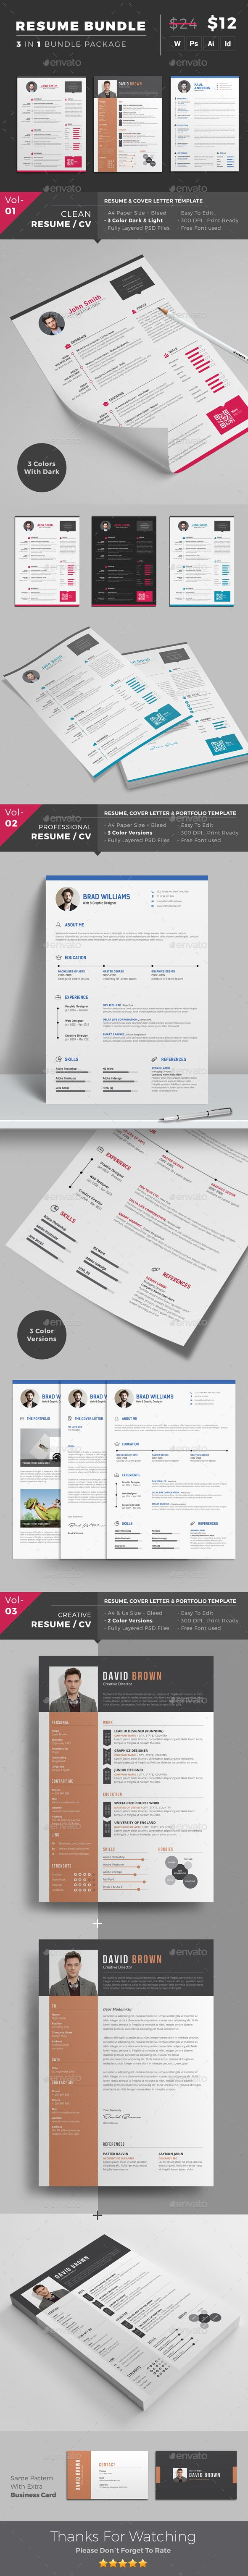 Resume Free Business Card TemplatesSimple Best